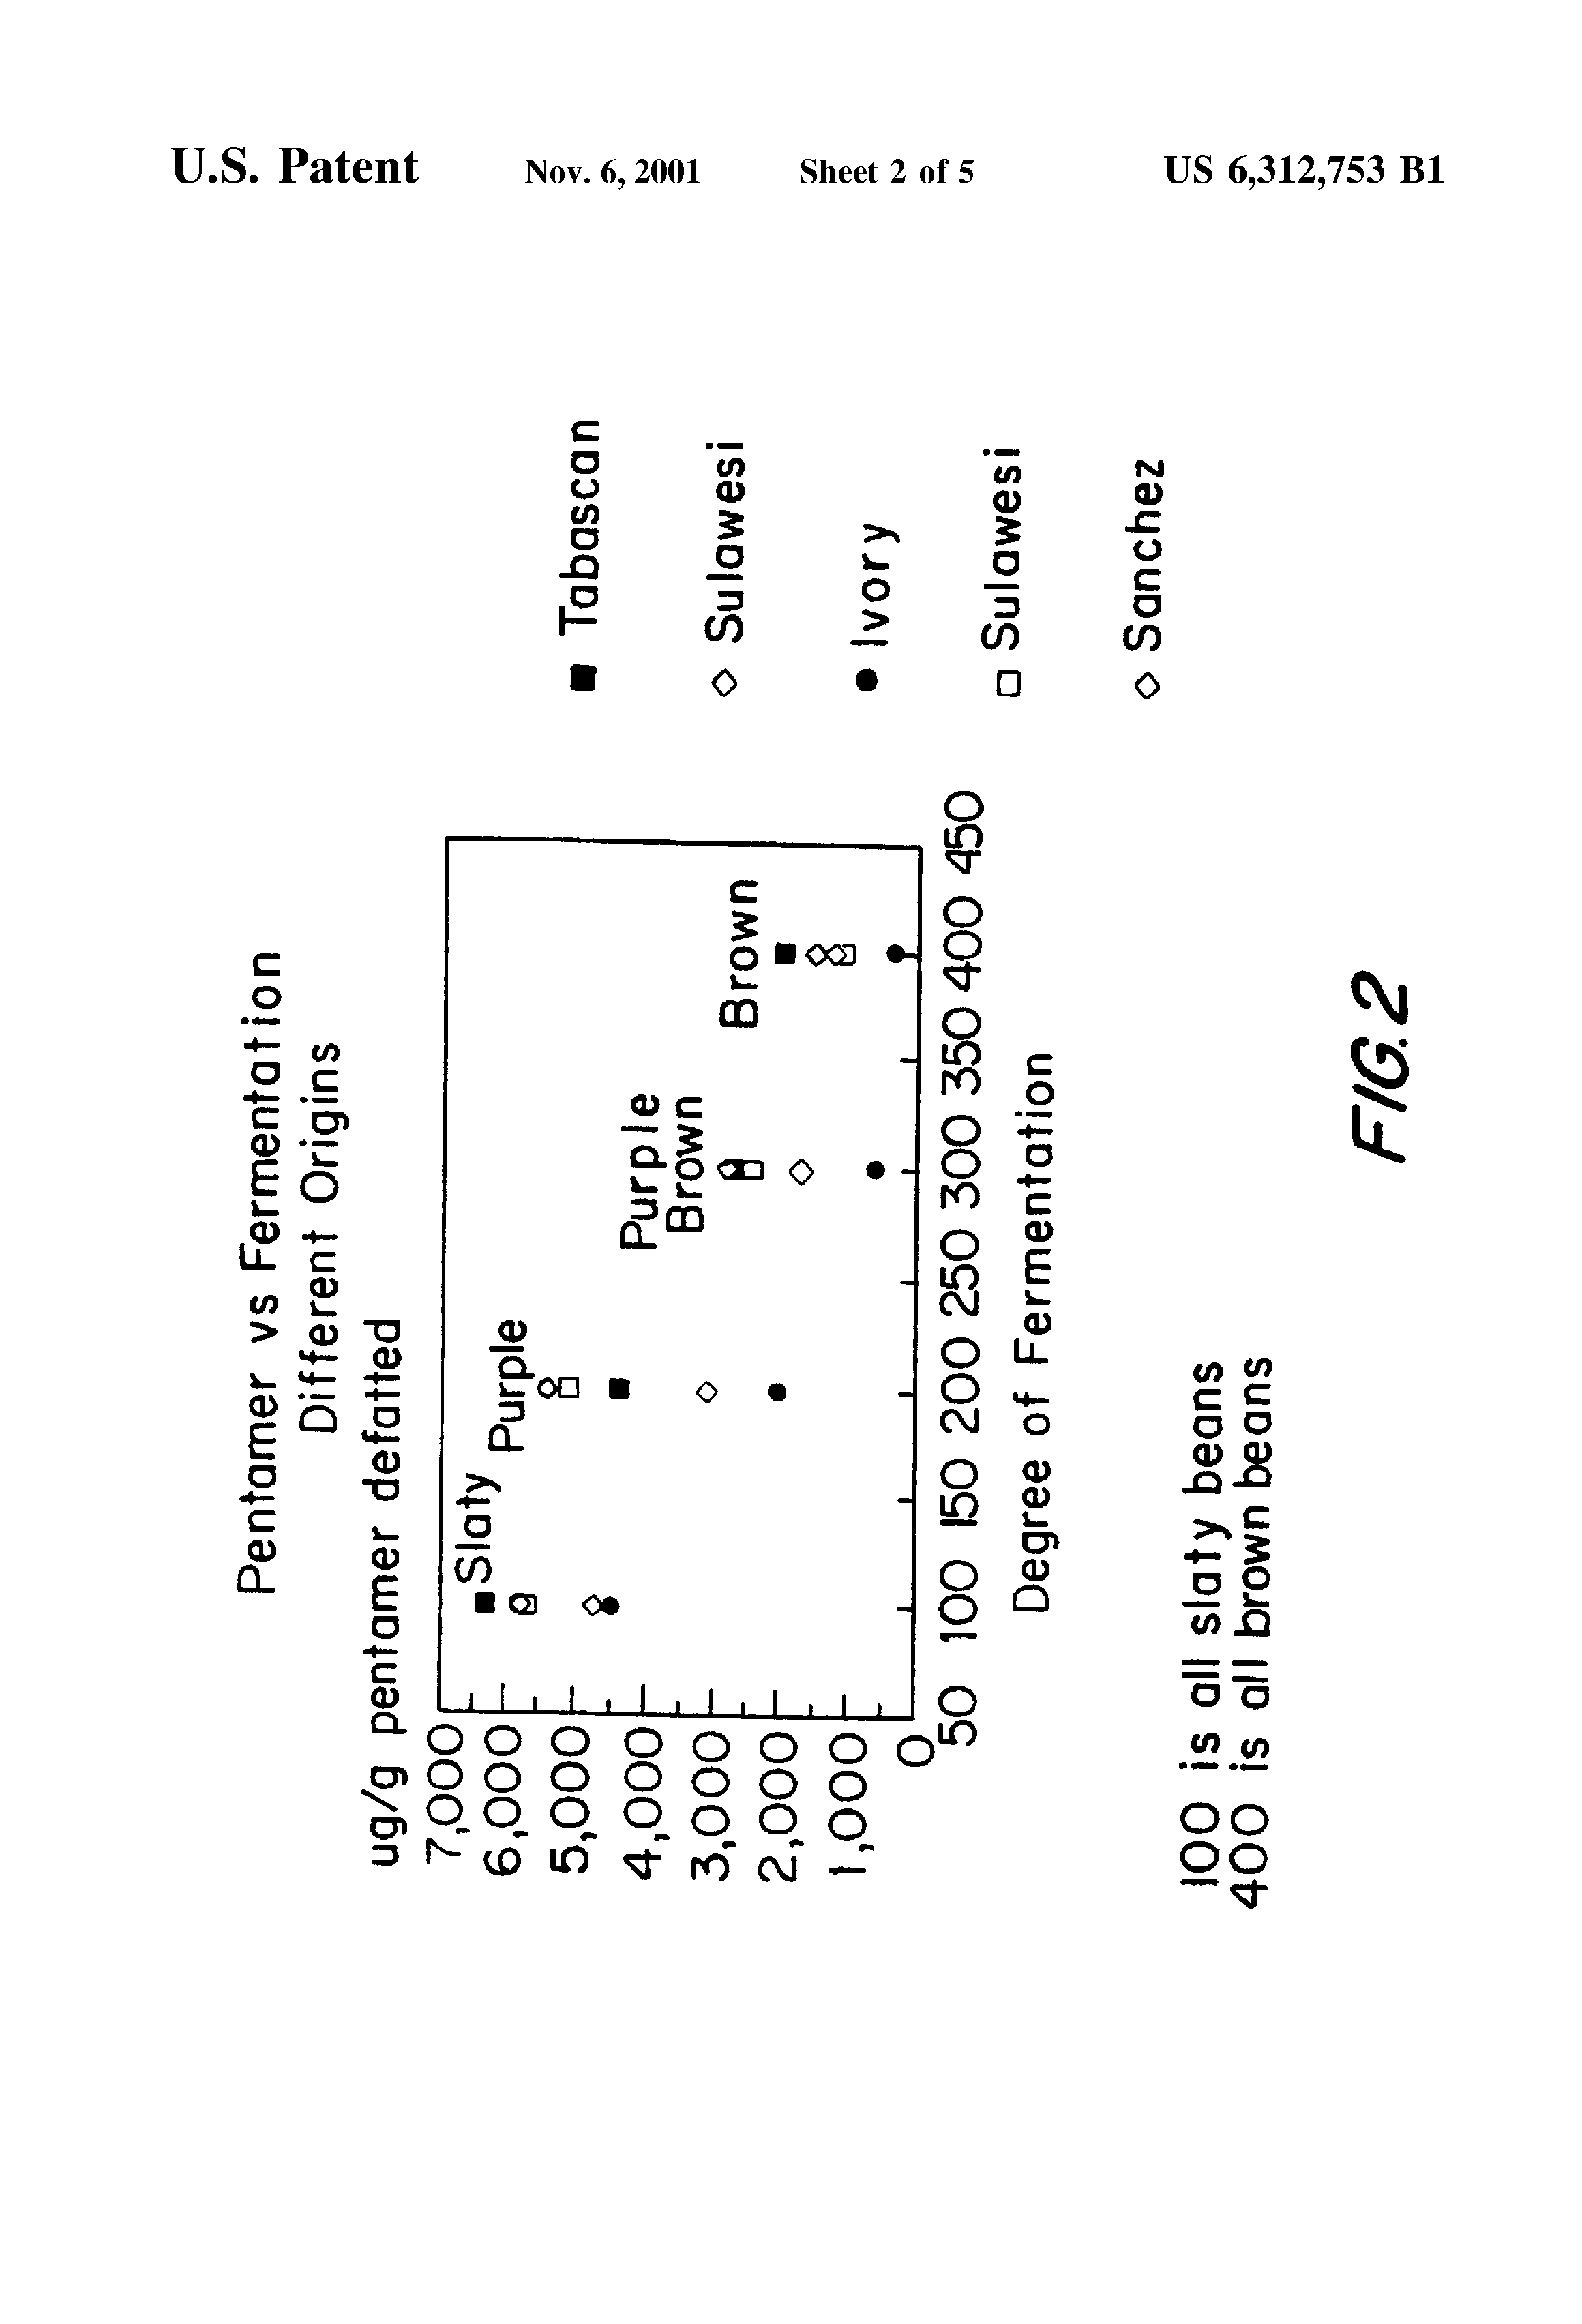 US6312753B1 - Cocoa components, edible products having enriched polyphenol  content, methods of making same and medical uses - Google Patents